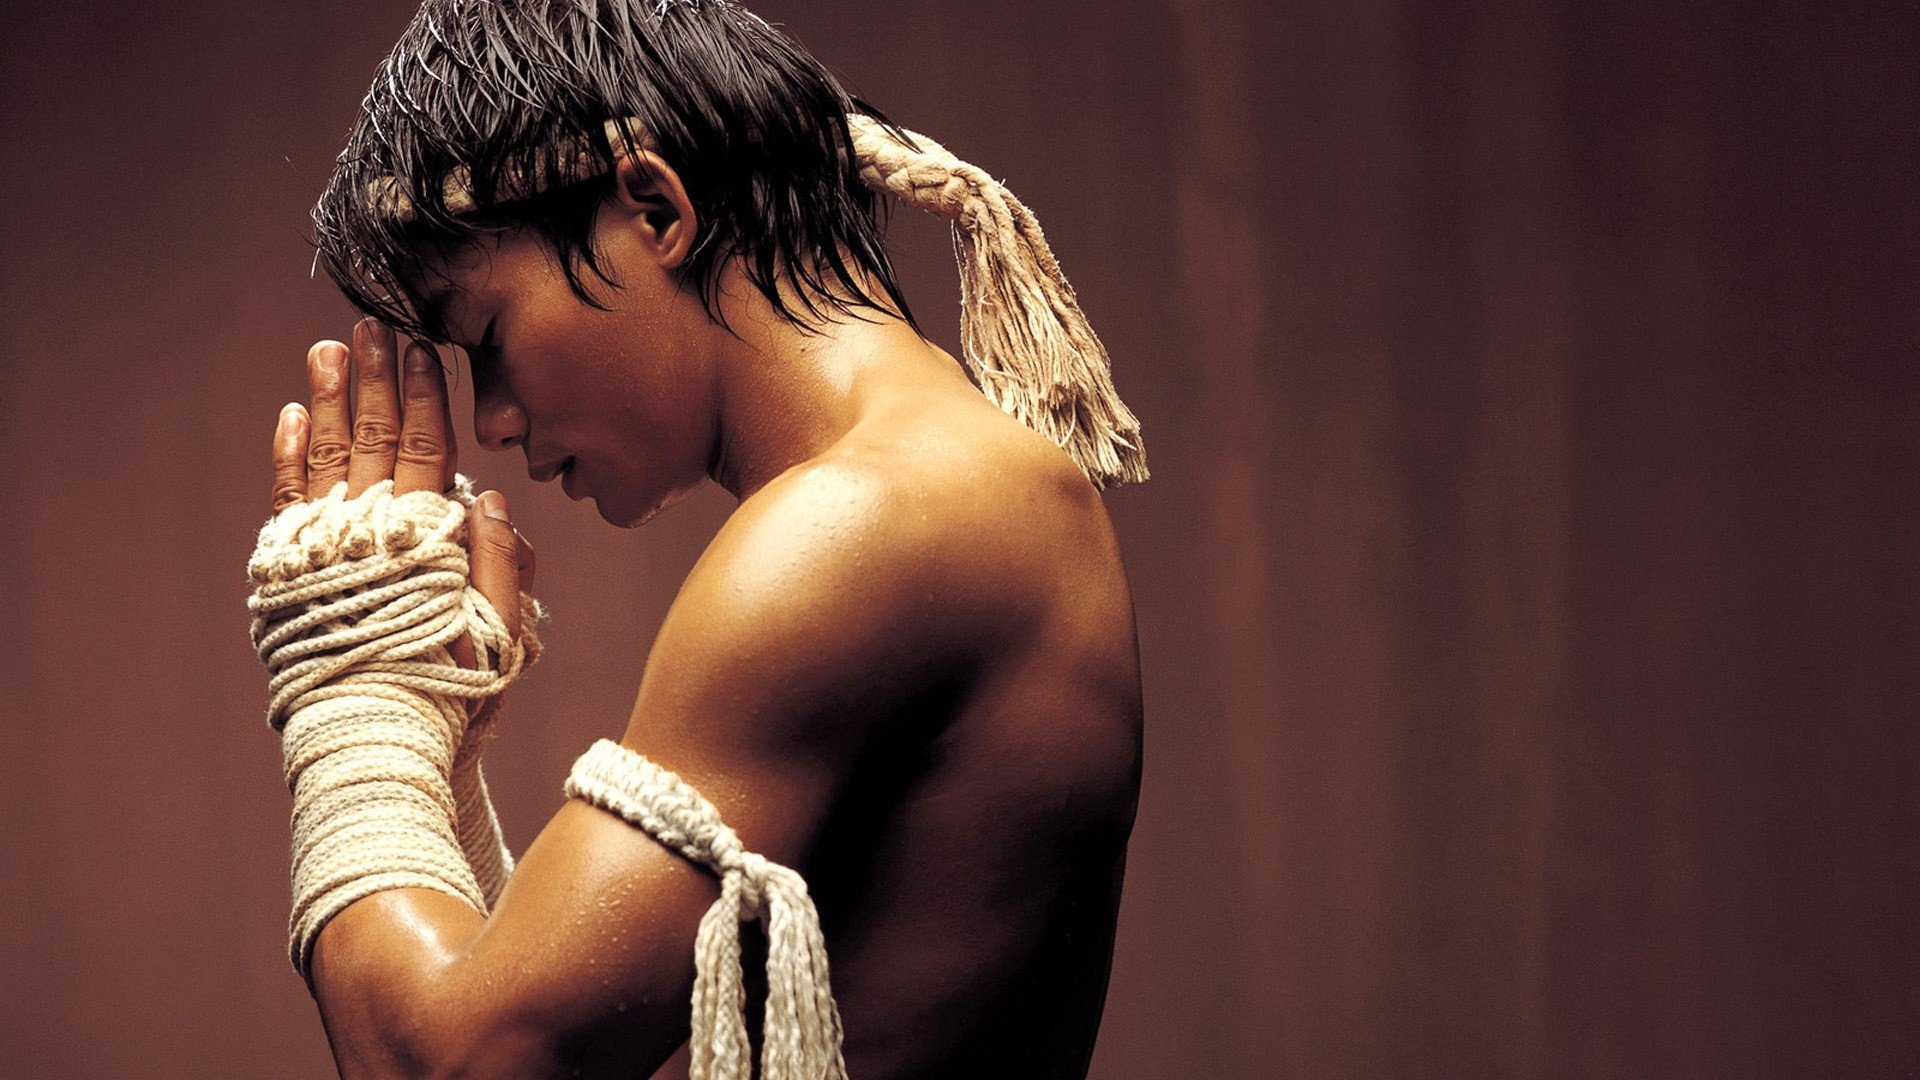 Celebrity - Tony Jaa  Wallpaper